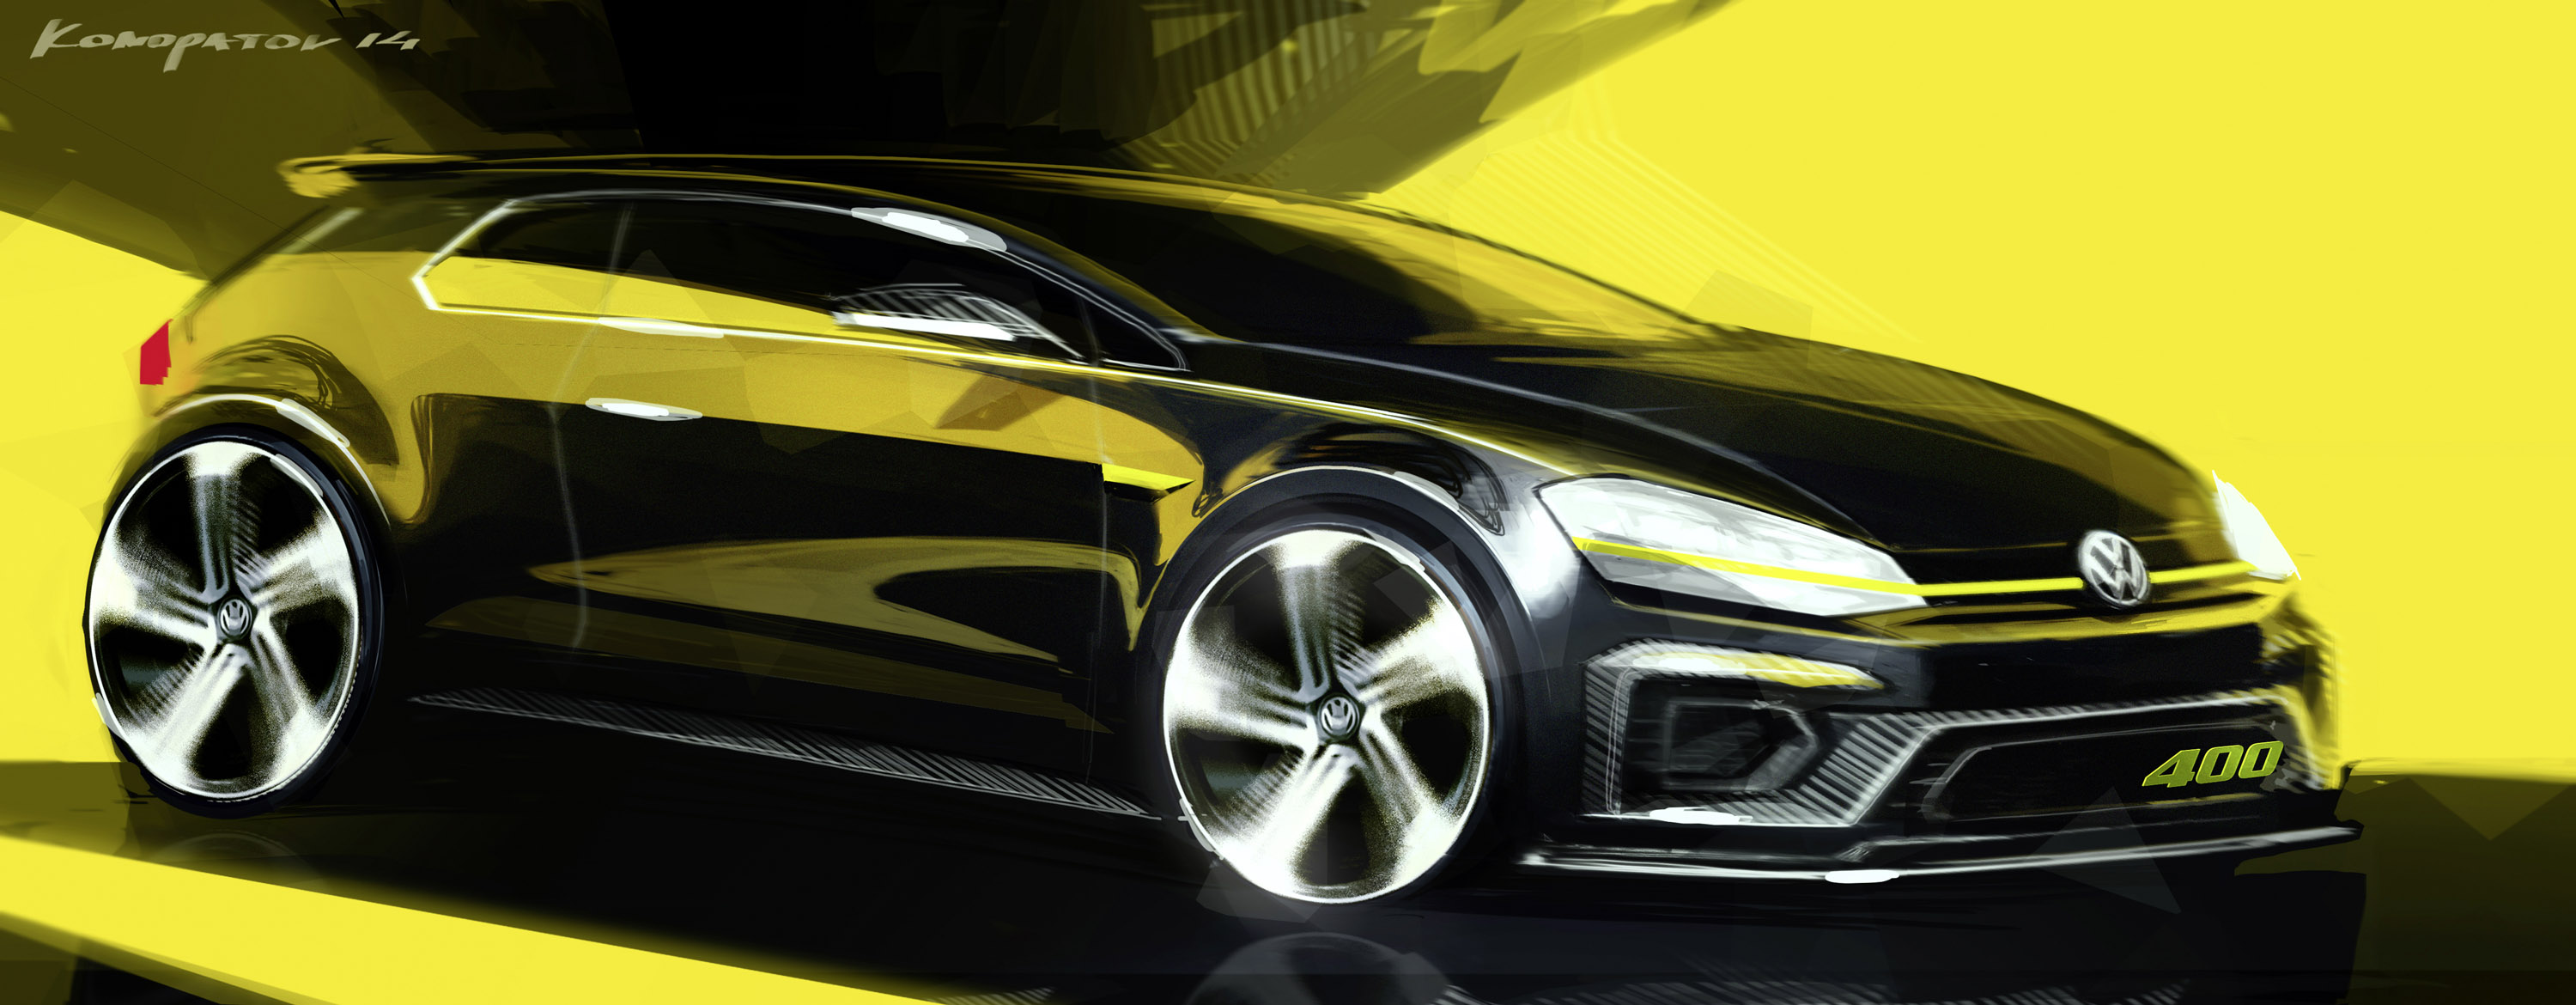 Golf R 400 >> Volkswagen Golf R 400 Concept Car [sketch]